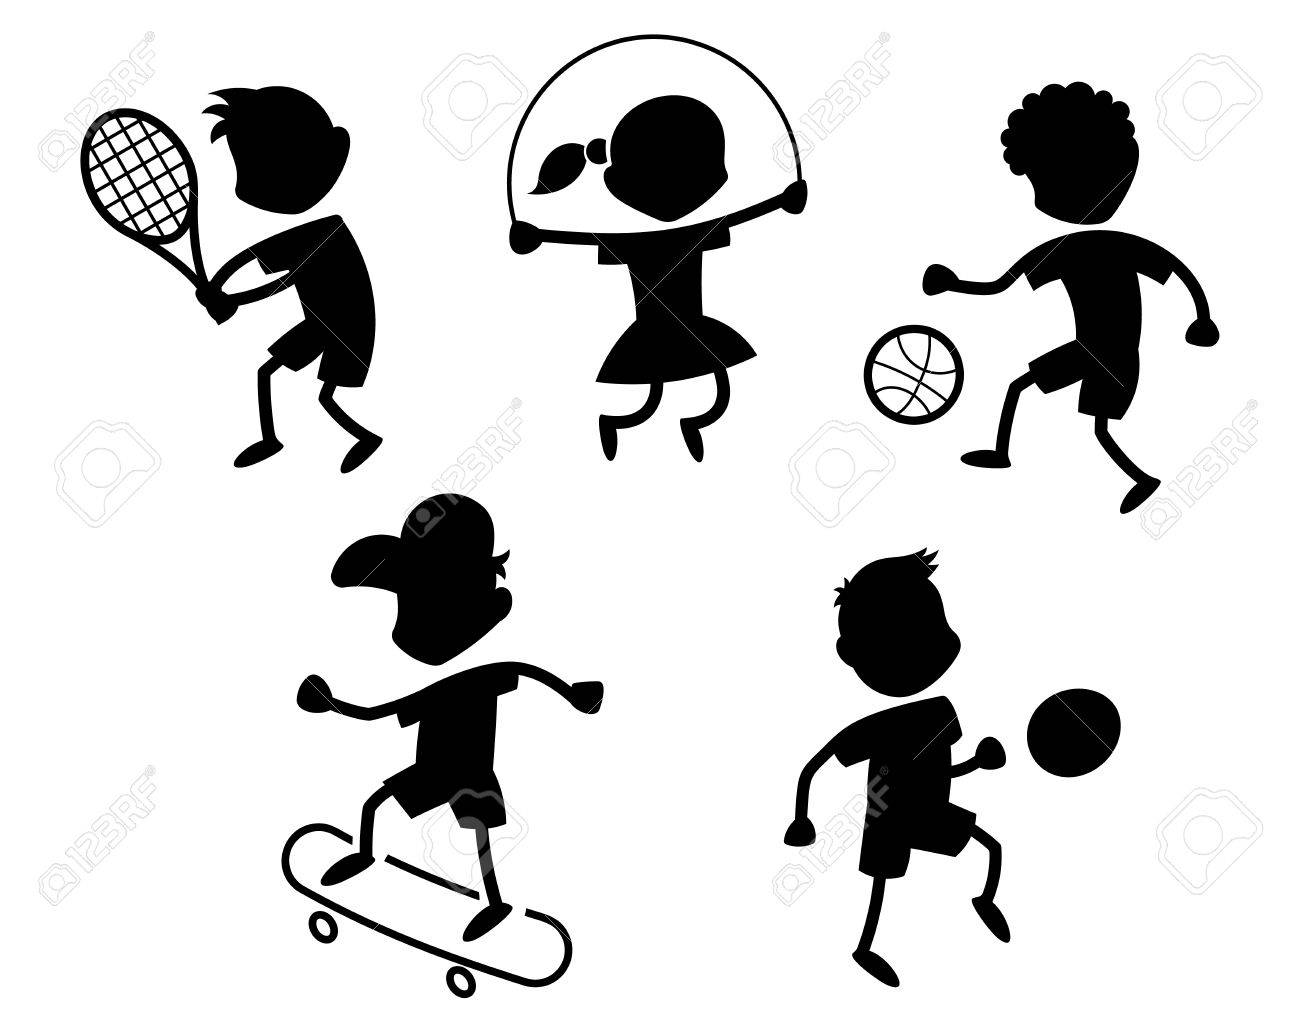 Cartoon Sport Icons Playing Kids Silhouettes Black Royalty Free Cliparts Vectors And Stock Illustration Image 44501068